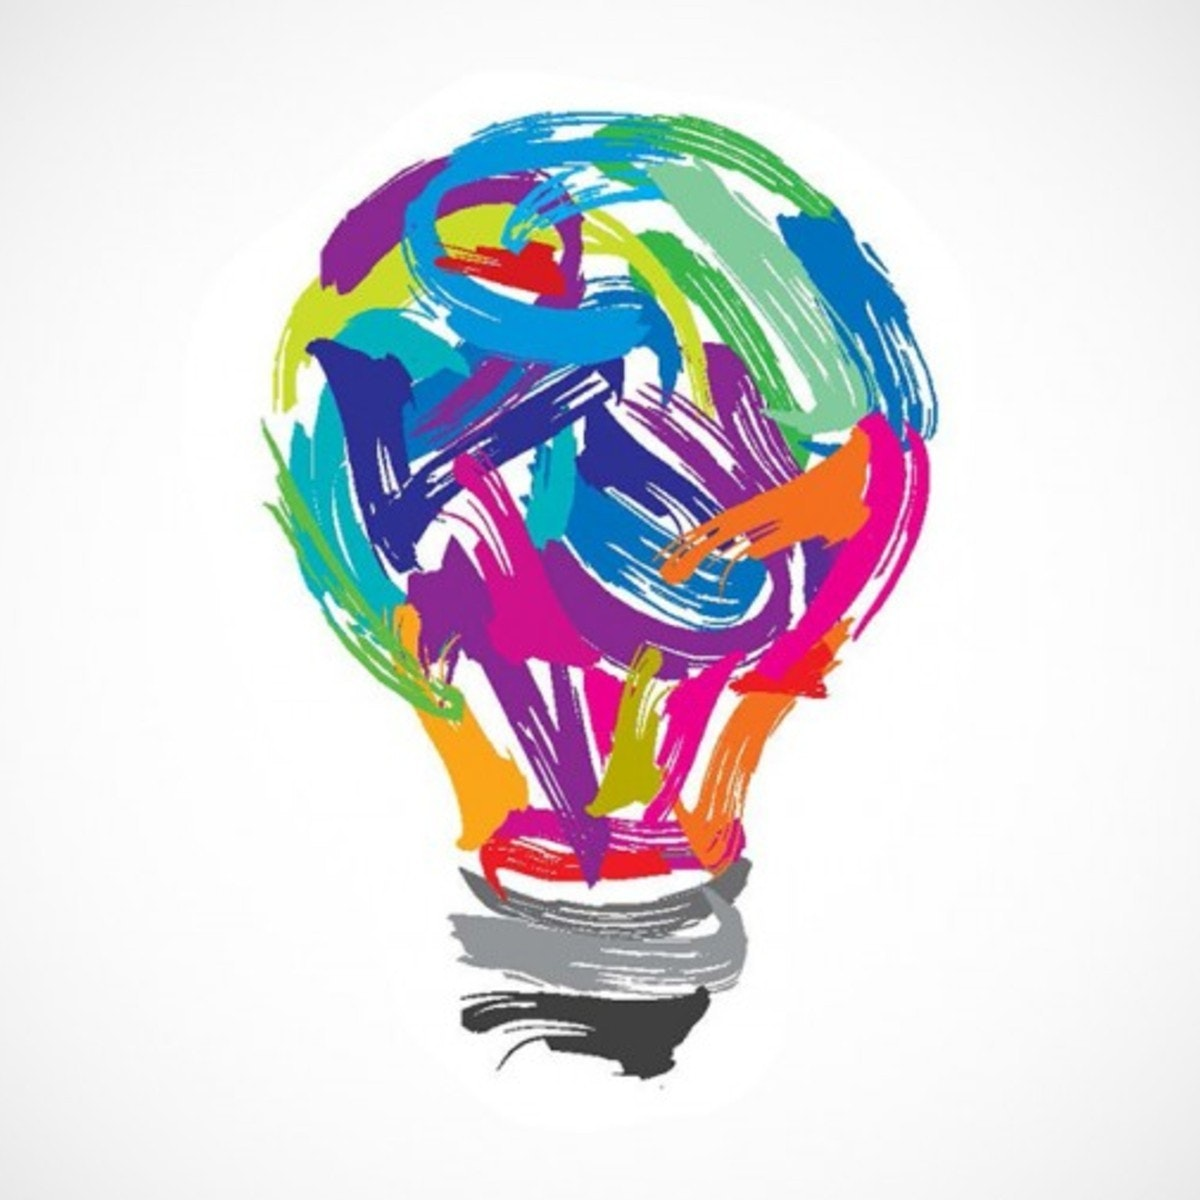 Design Images design thinking for innovation | coursera